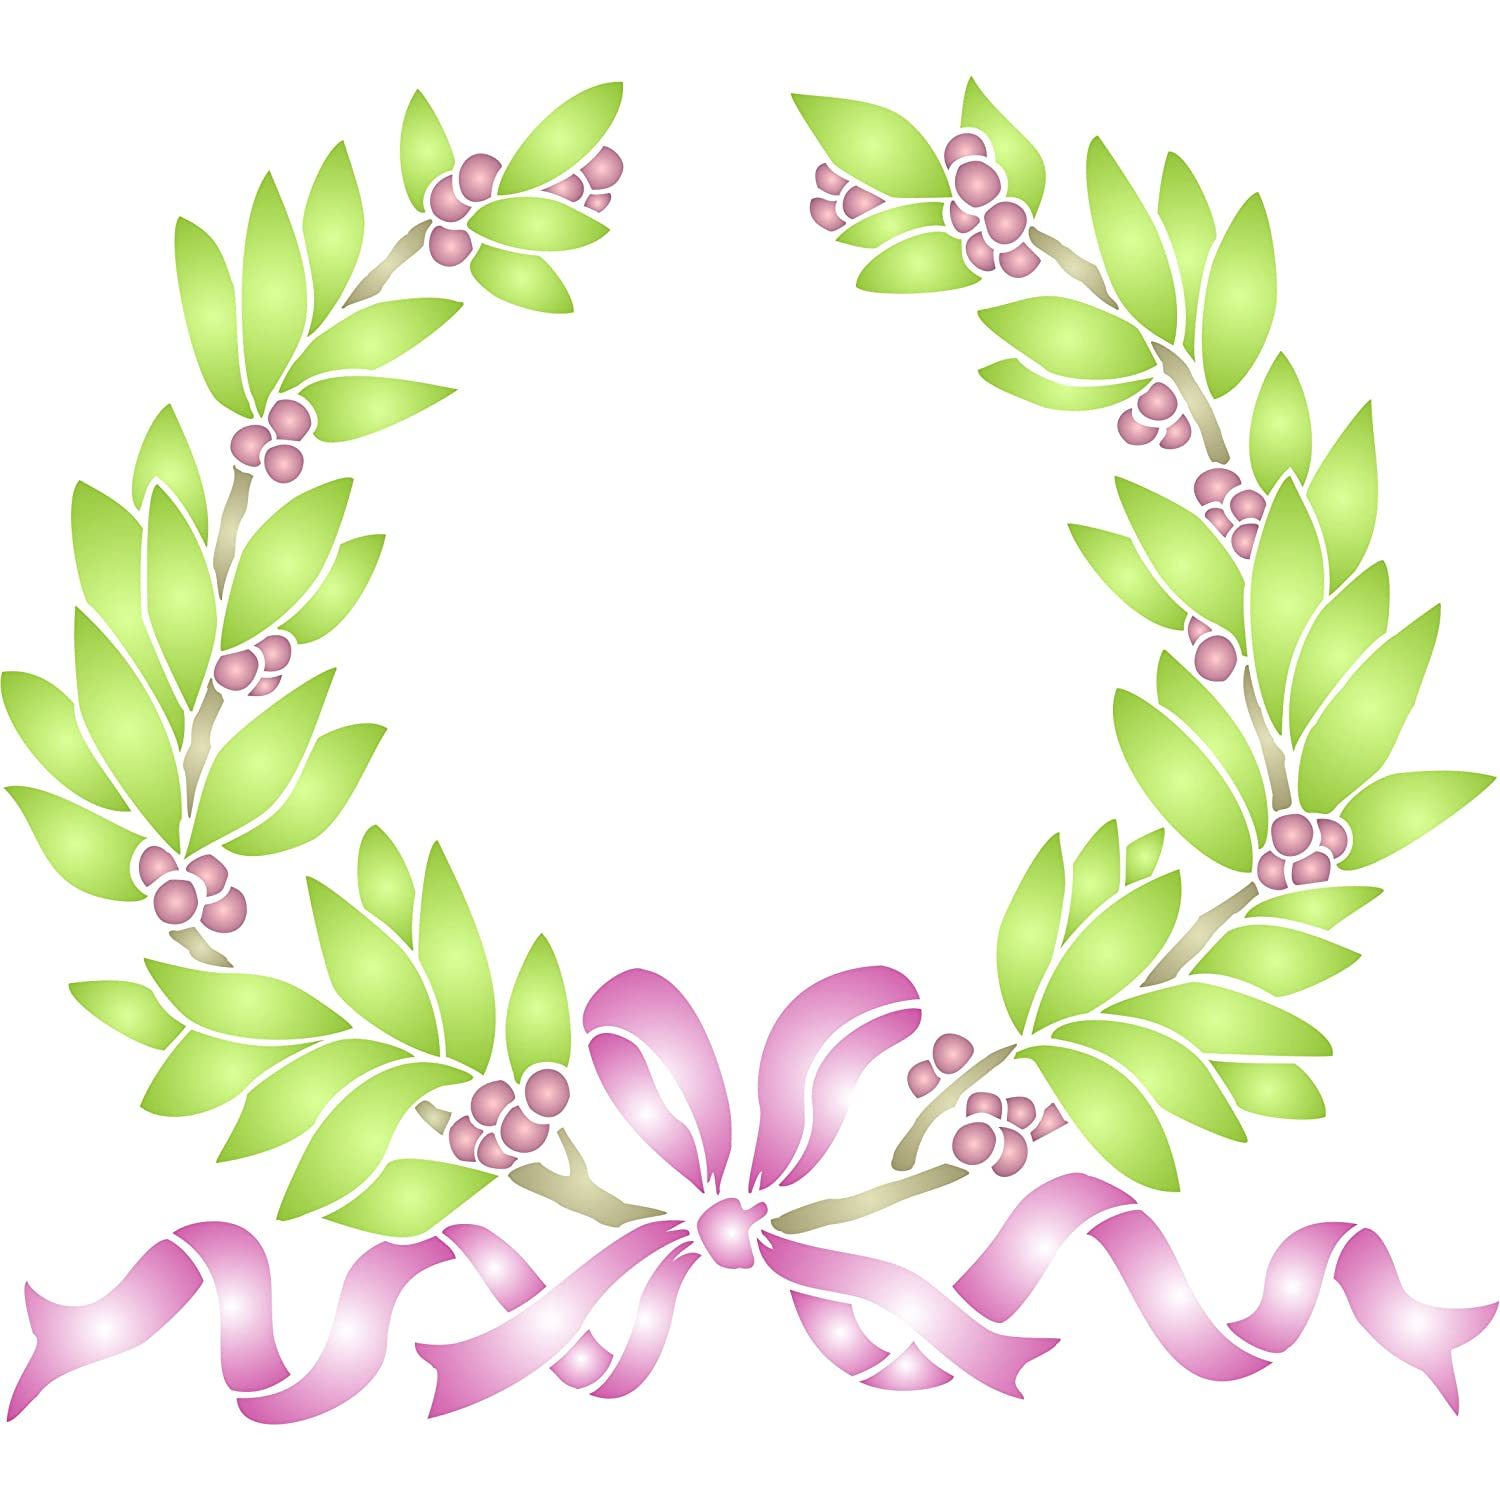 laurel leaf crown template - top result 50 awesome laurel leaf crown template gallery